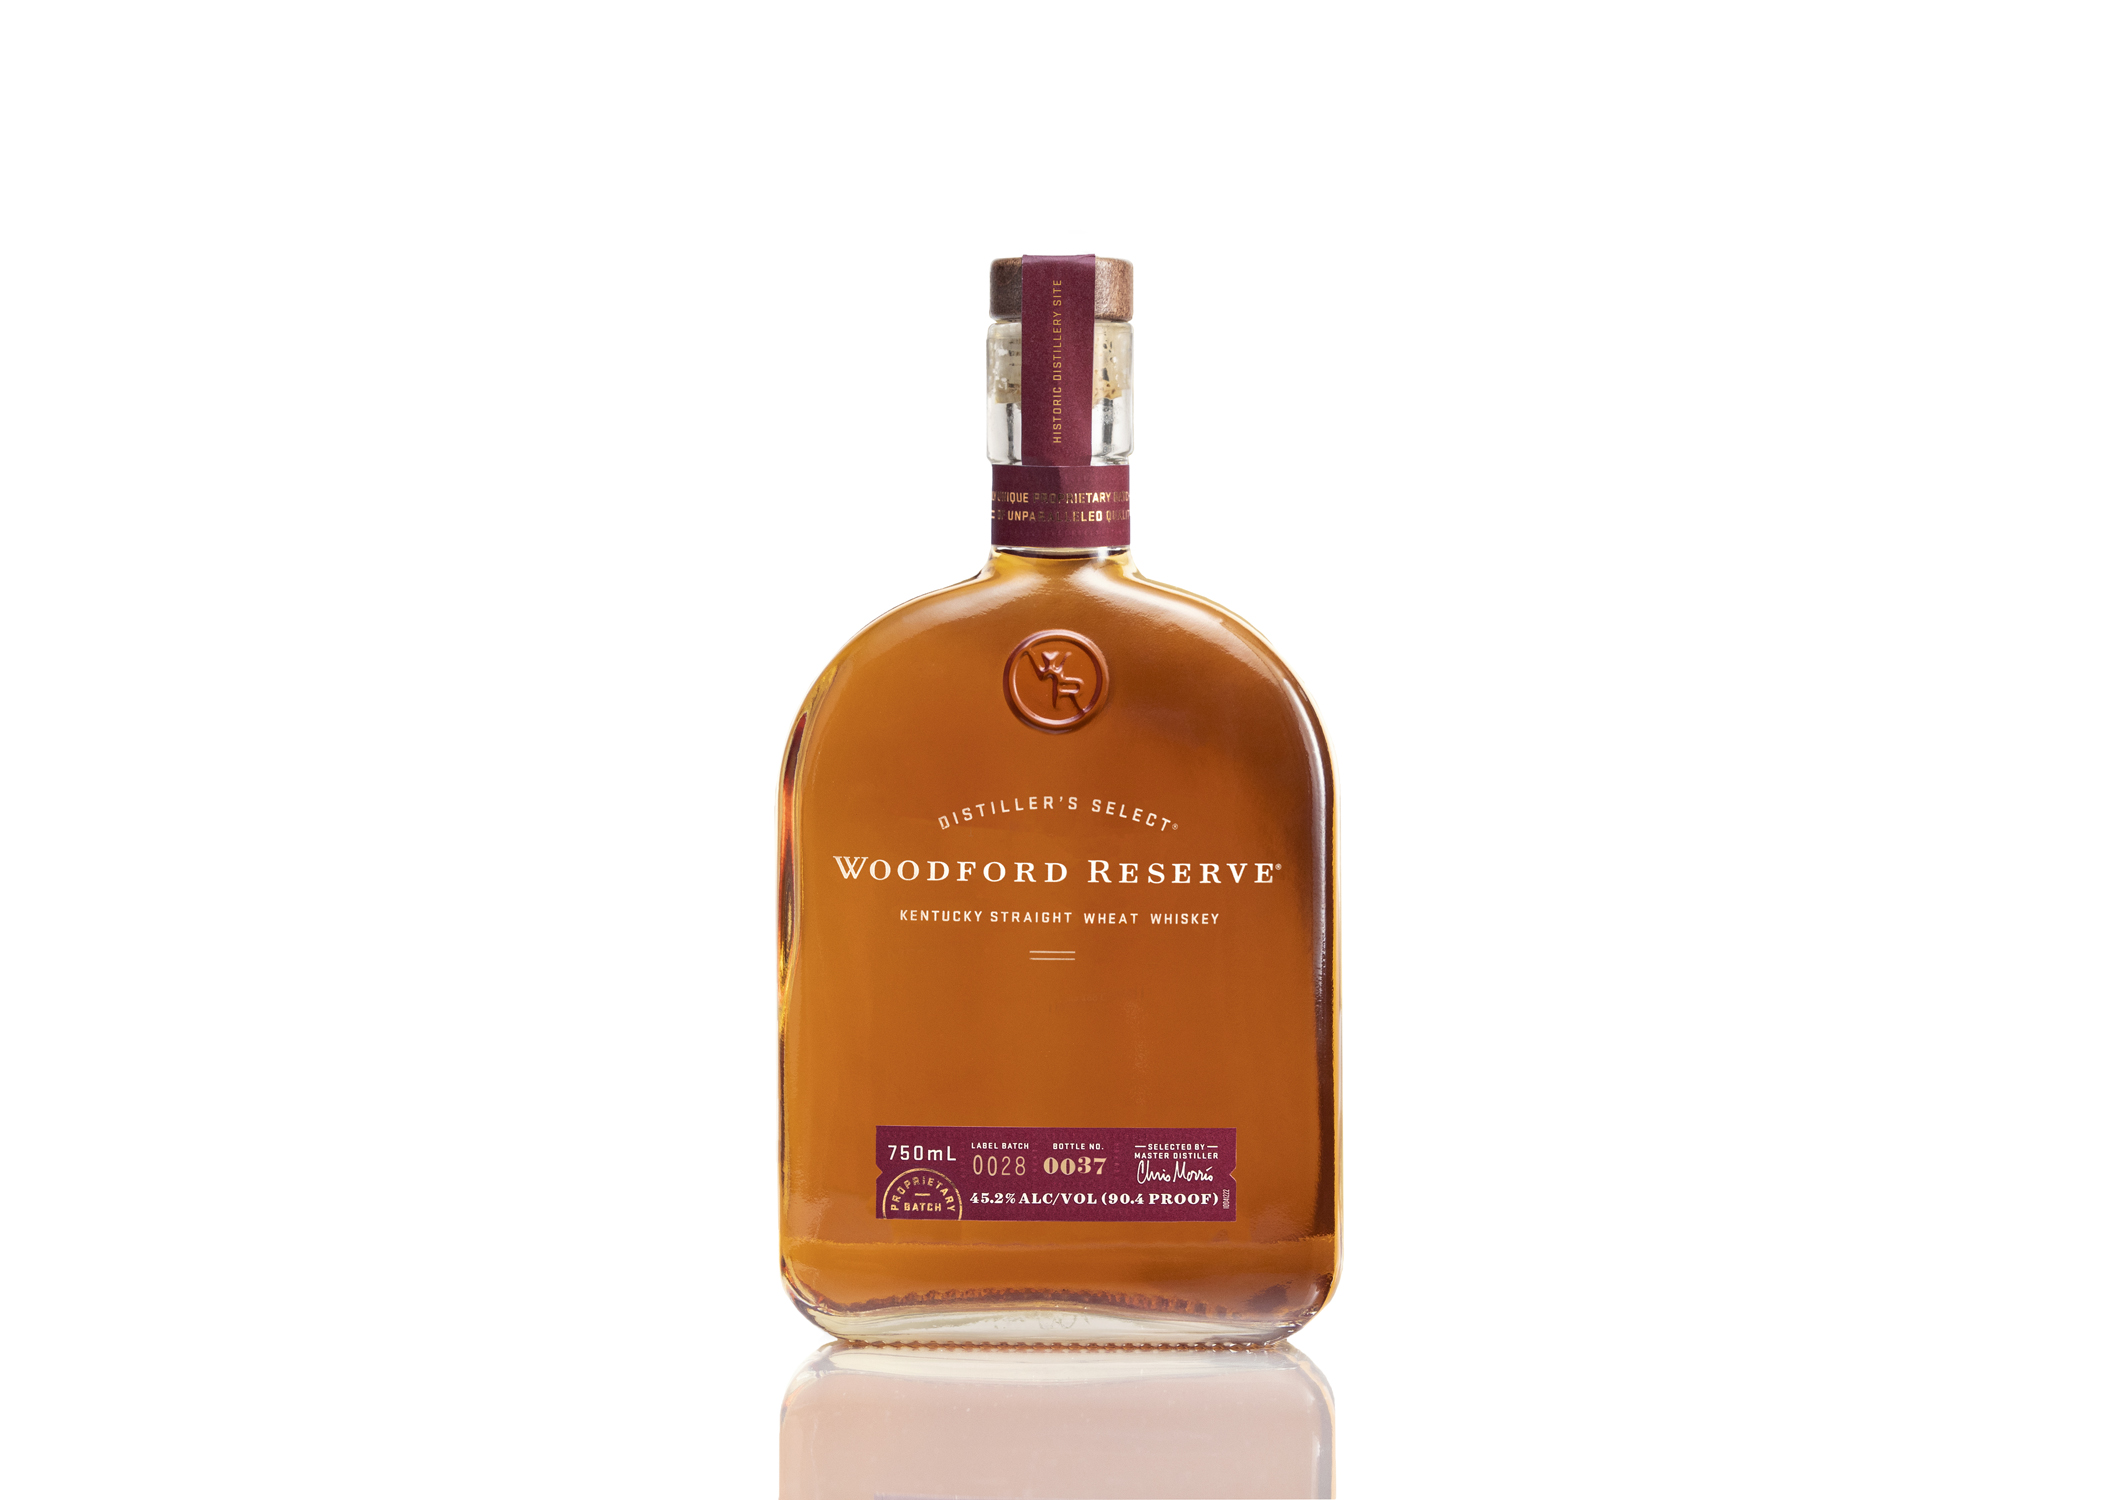 Woodford Reserve Kentucky Straight Wheat Whiskey. Photo Courtesy Woodford Reserve.